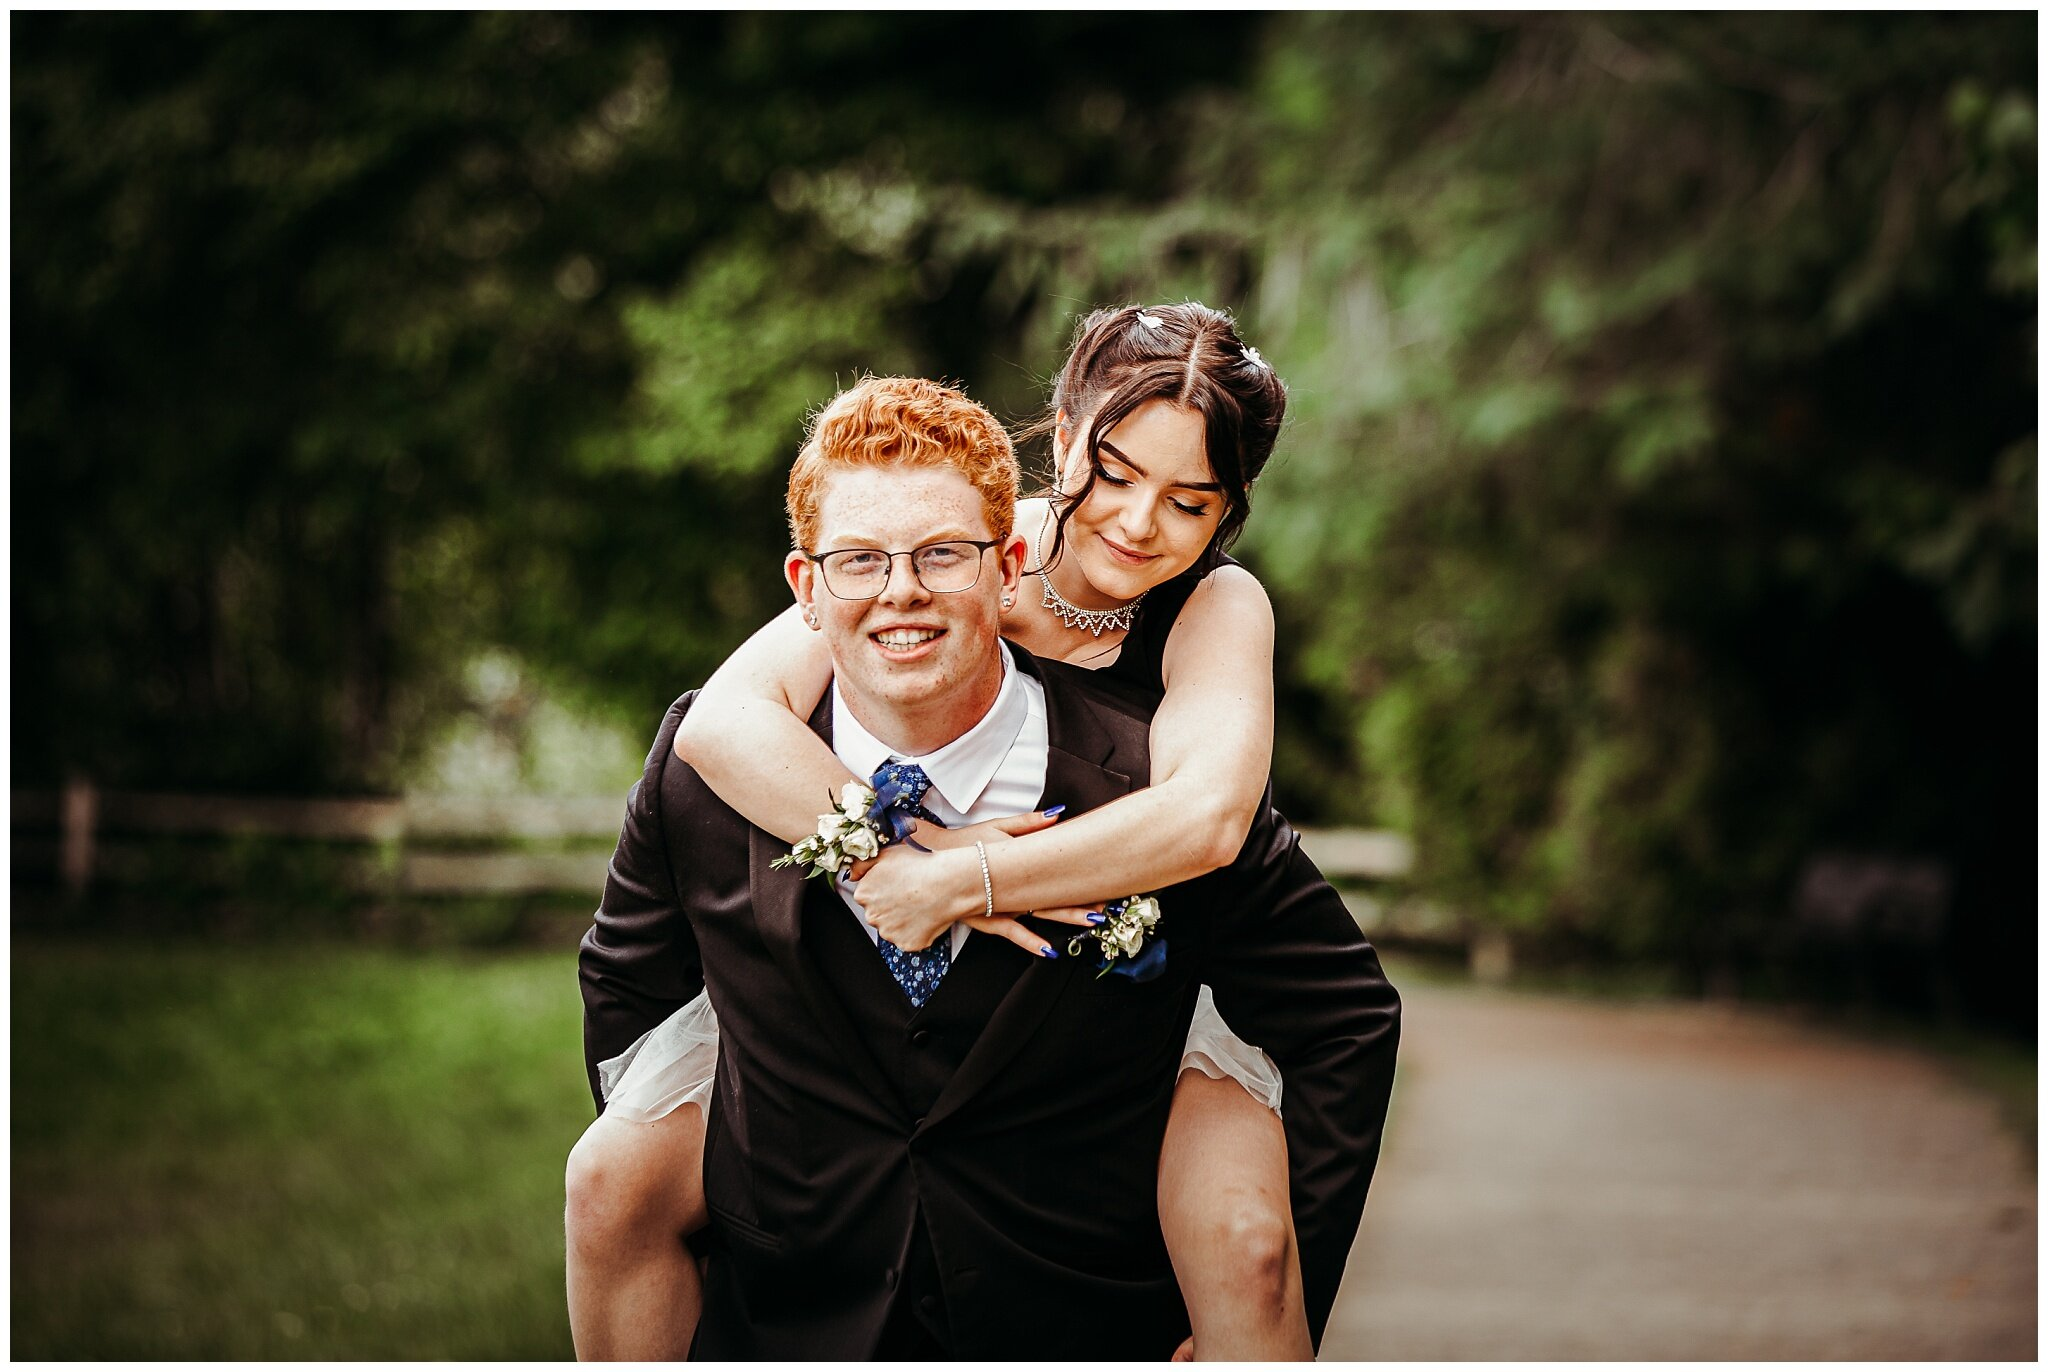 Chilliwack Highschool Prom Graduation Photographer 2019 Abbotsford fun bright_0017.jpg